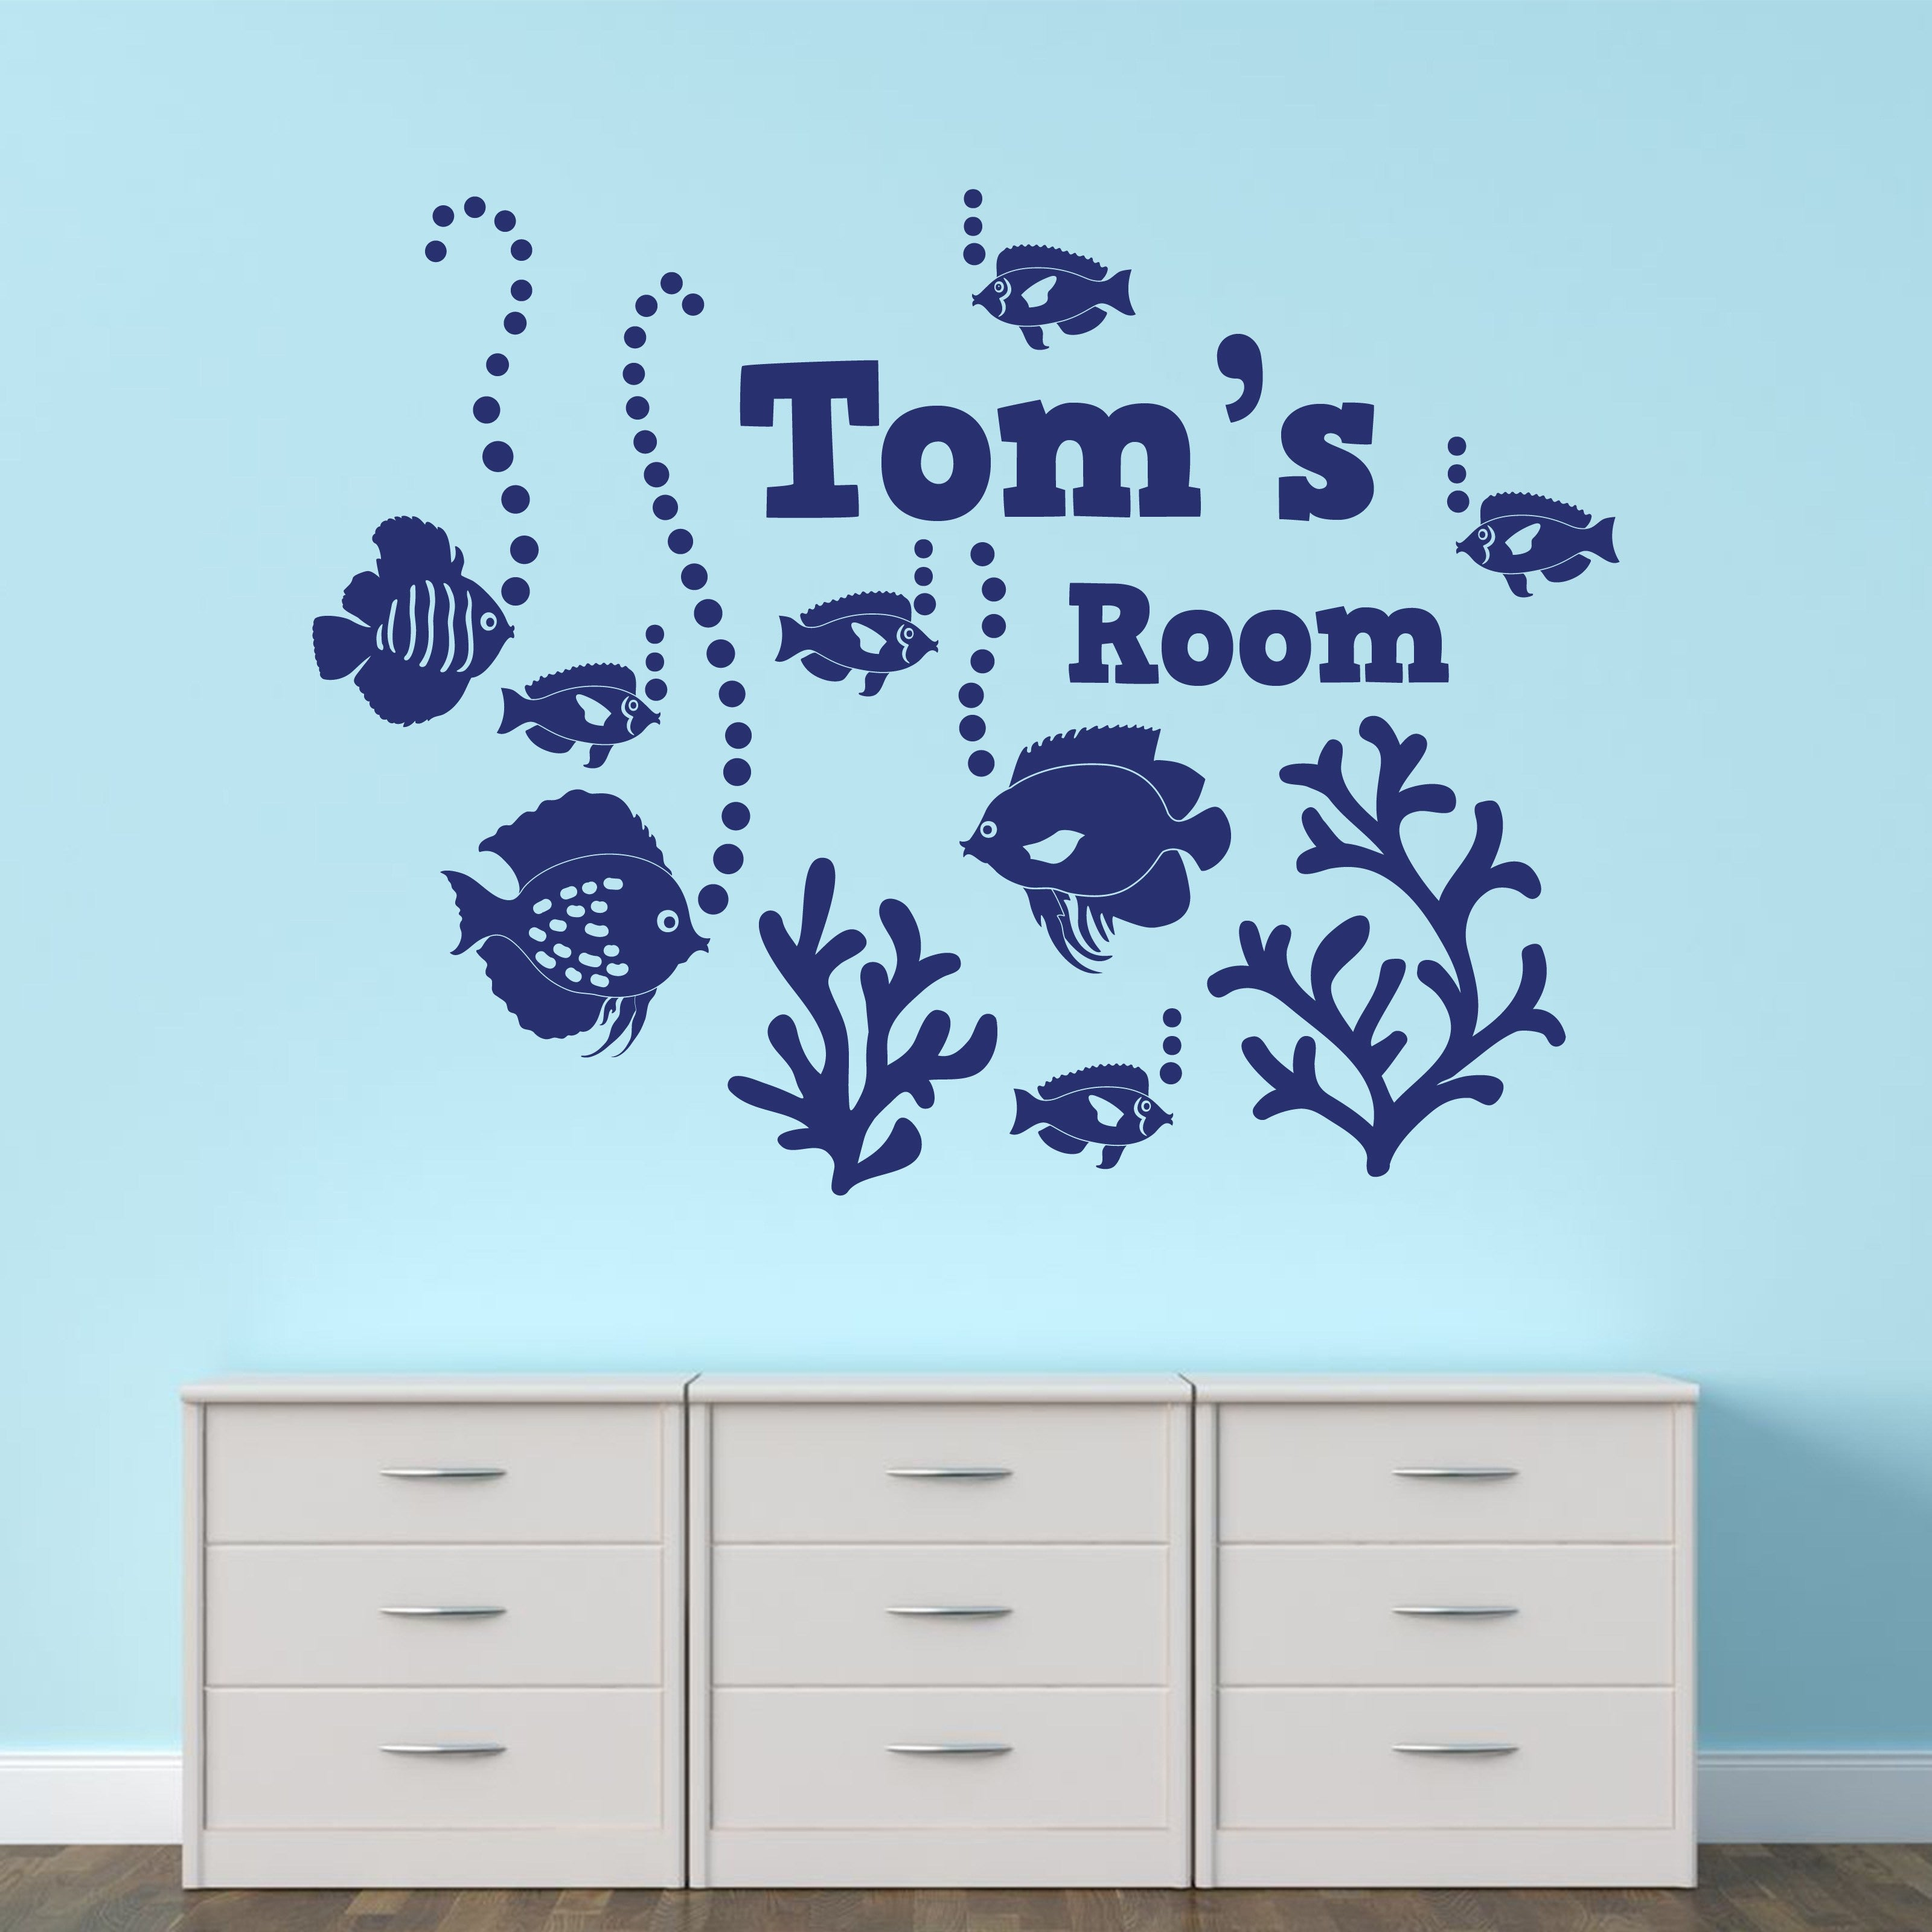 personalised under the sea vinyl wall art sticker mural decal any wall sticker personalised under the sea vinyl wall art sticker mural decal